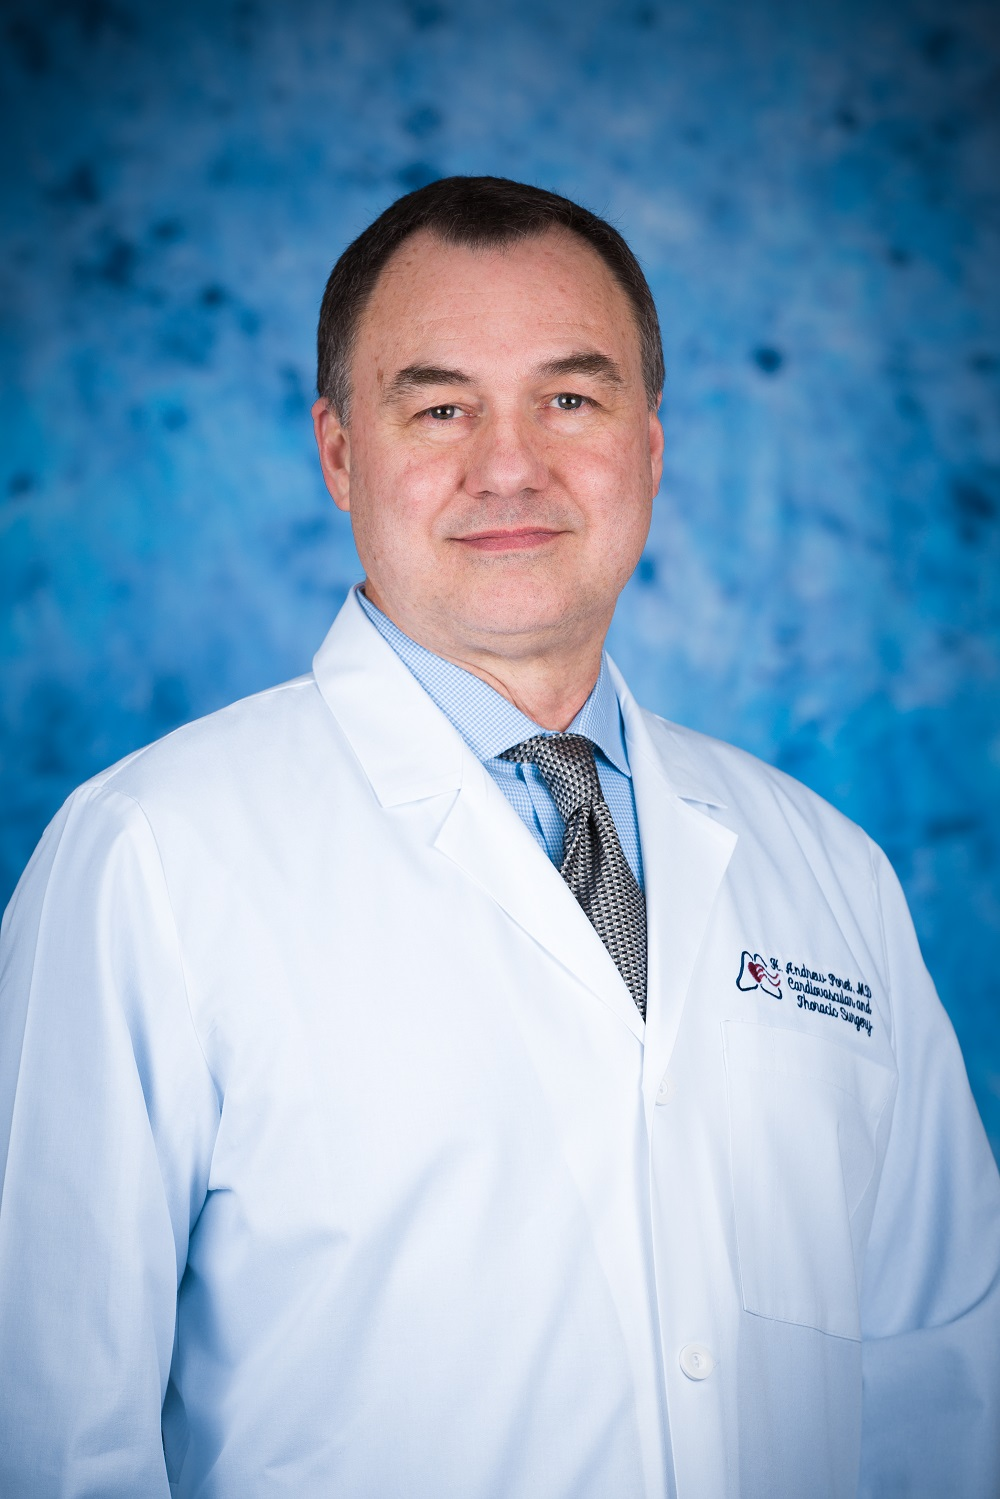 H. Andrew Poret, MD of East Tennessee Cardiovascular Surgery Group